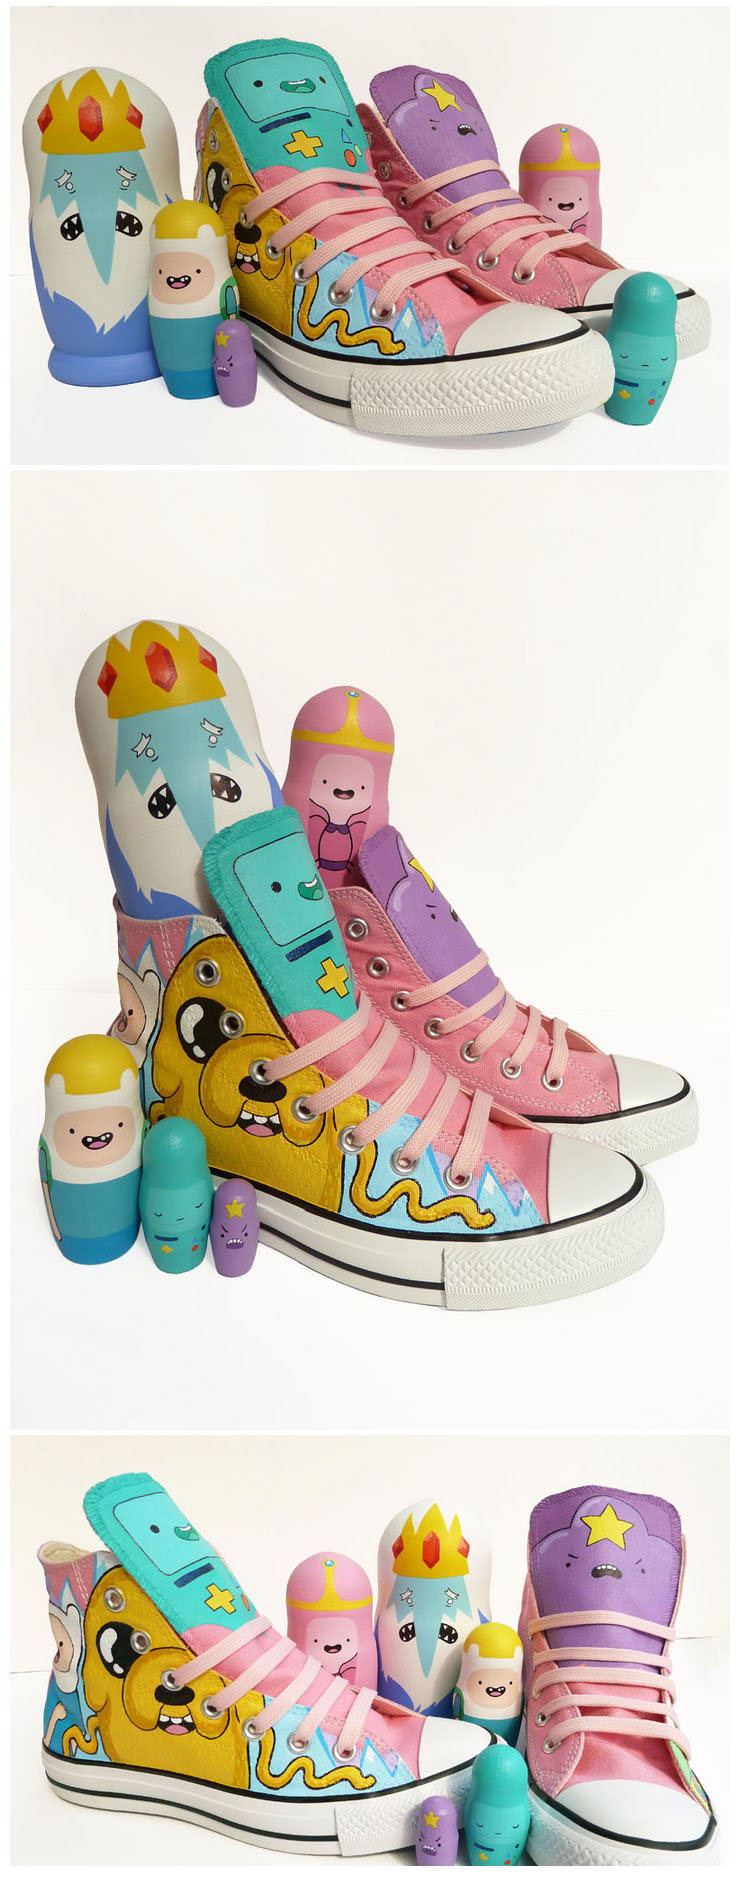 Adventure Time Converse and Russian Dolls by ponychops